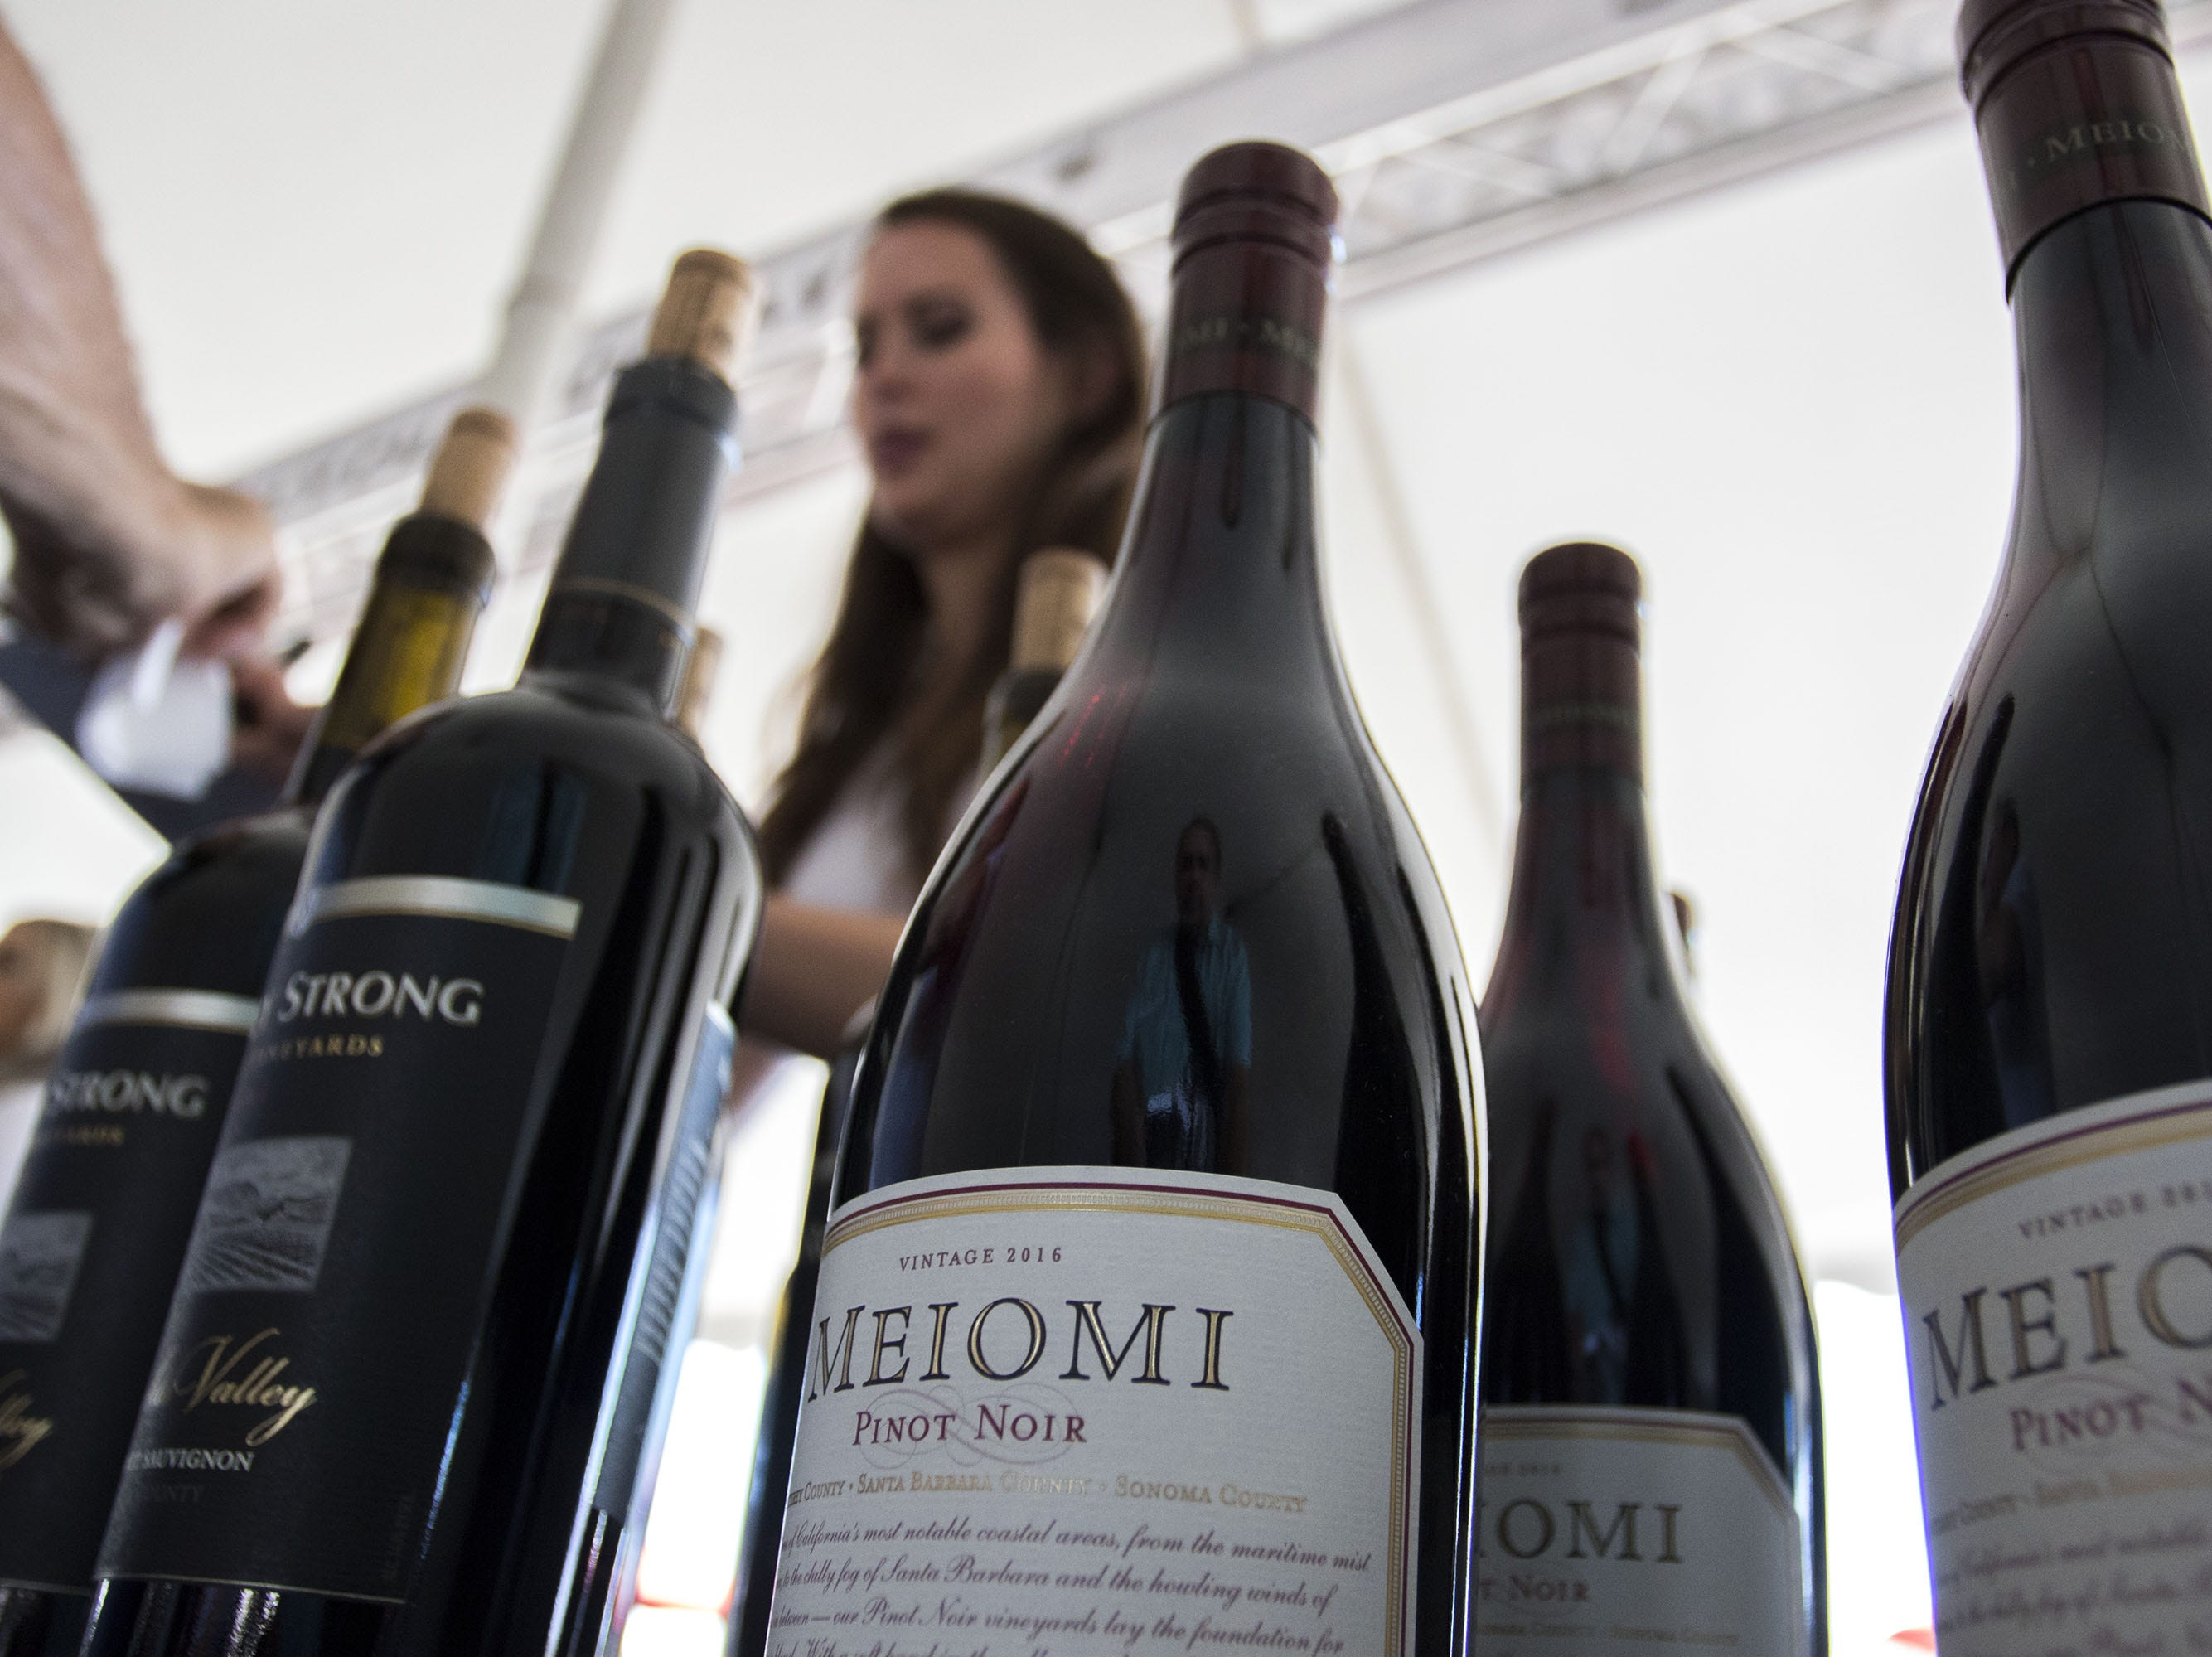 Wine bottles were everywhere during the azcentral Wine & Food Experience at WestWorld of Scottsdale, Saturday, Nov. 3, 2018.